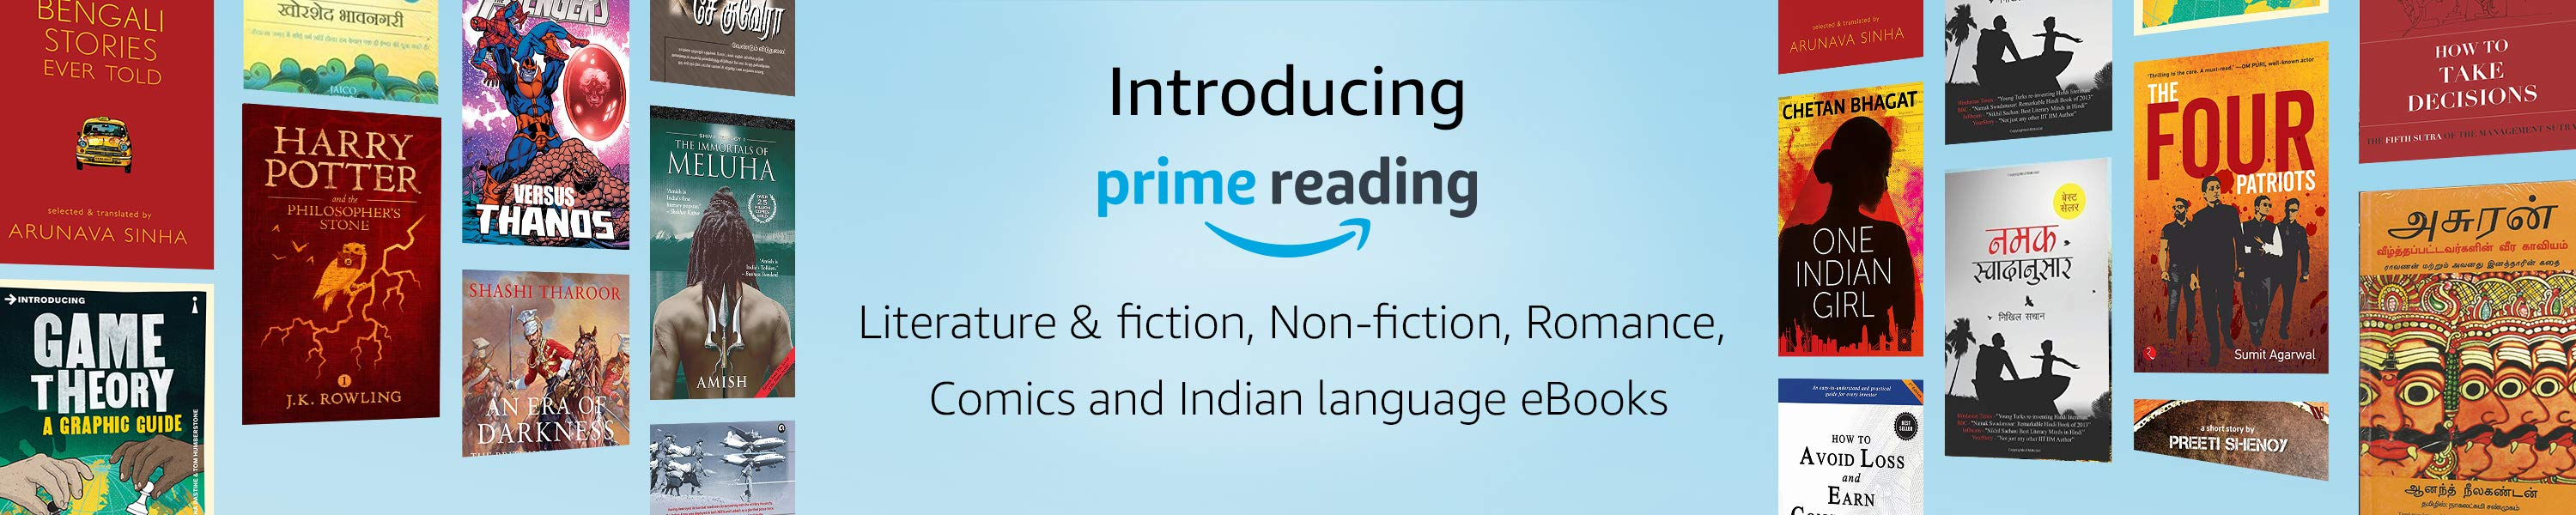 Amazon launches Prime Reading in India : Free Ebooks for